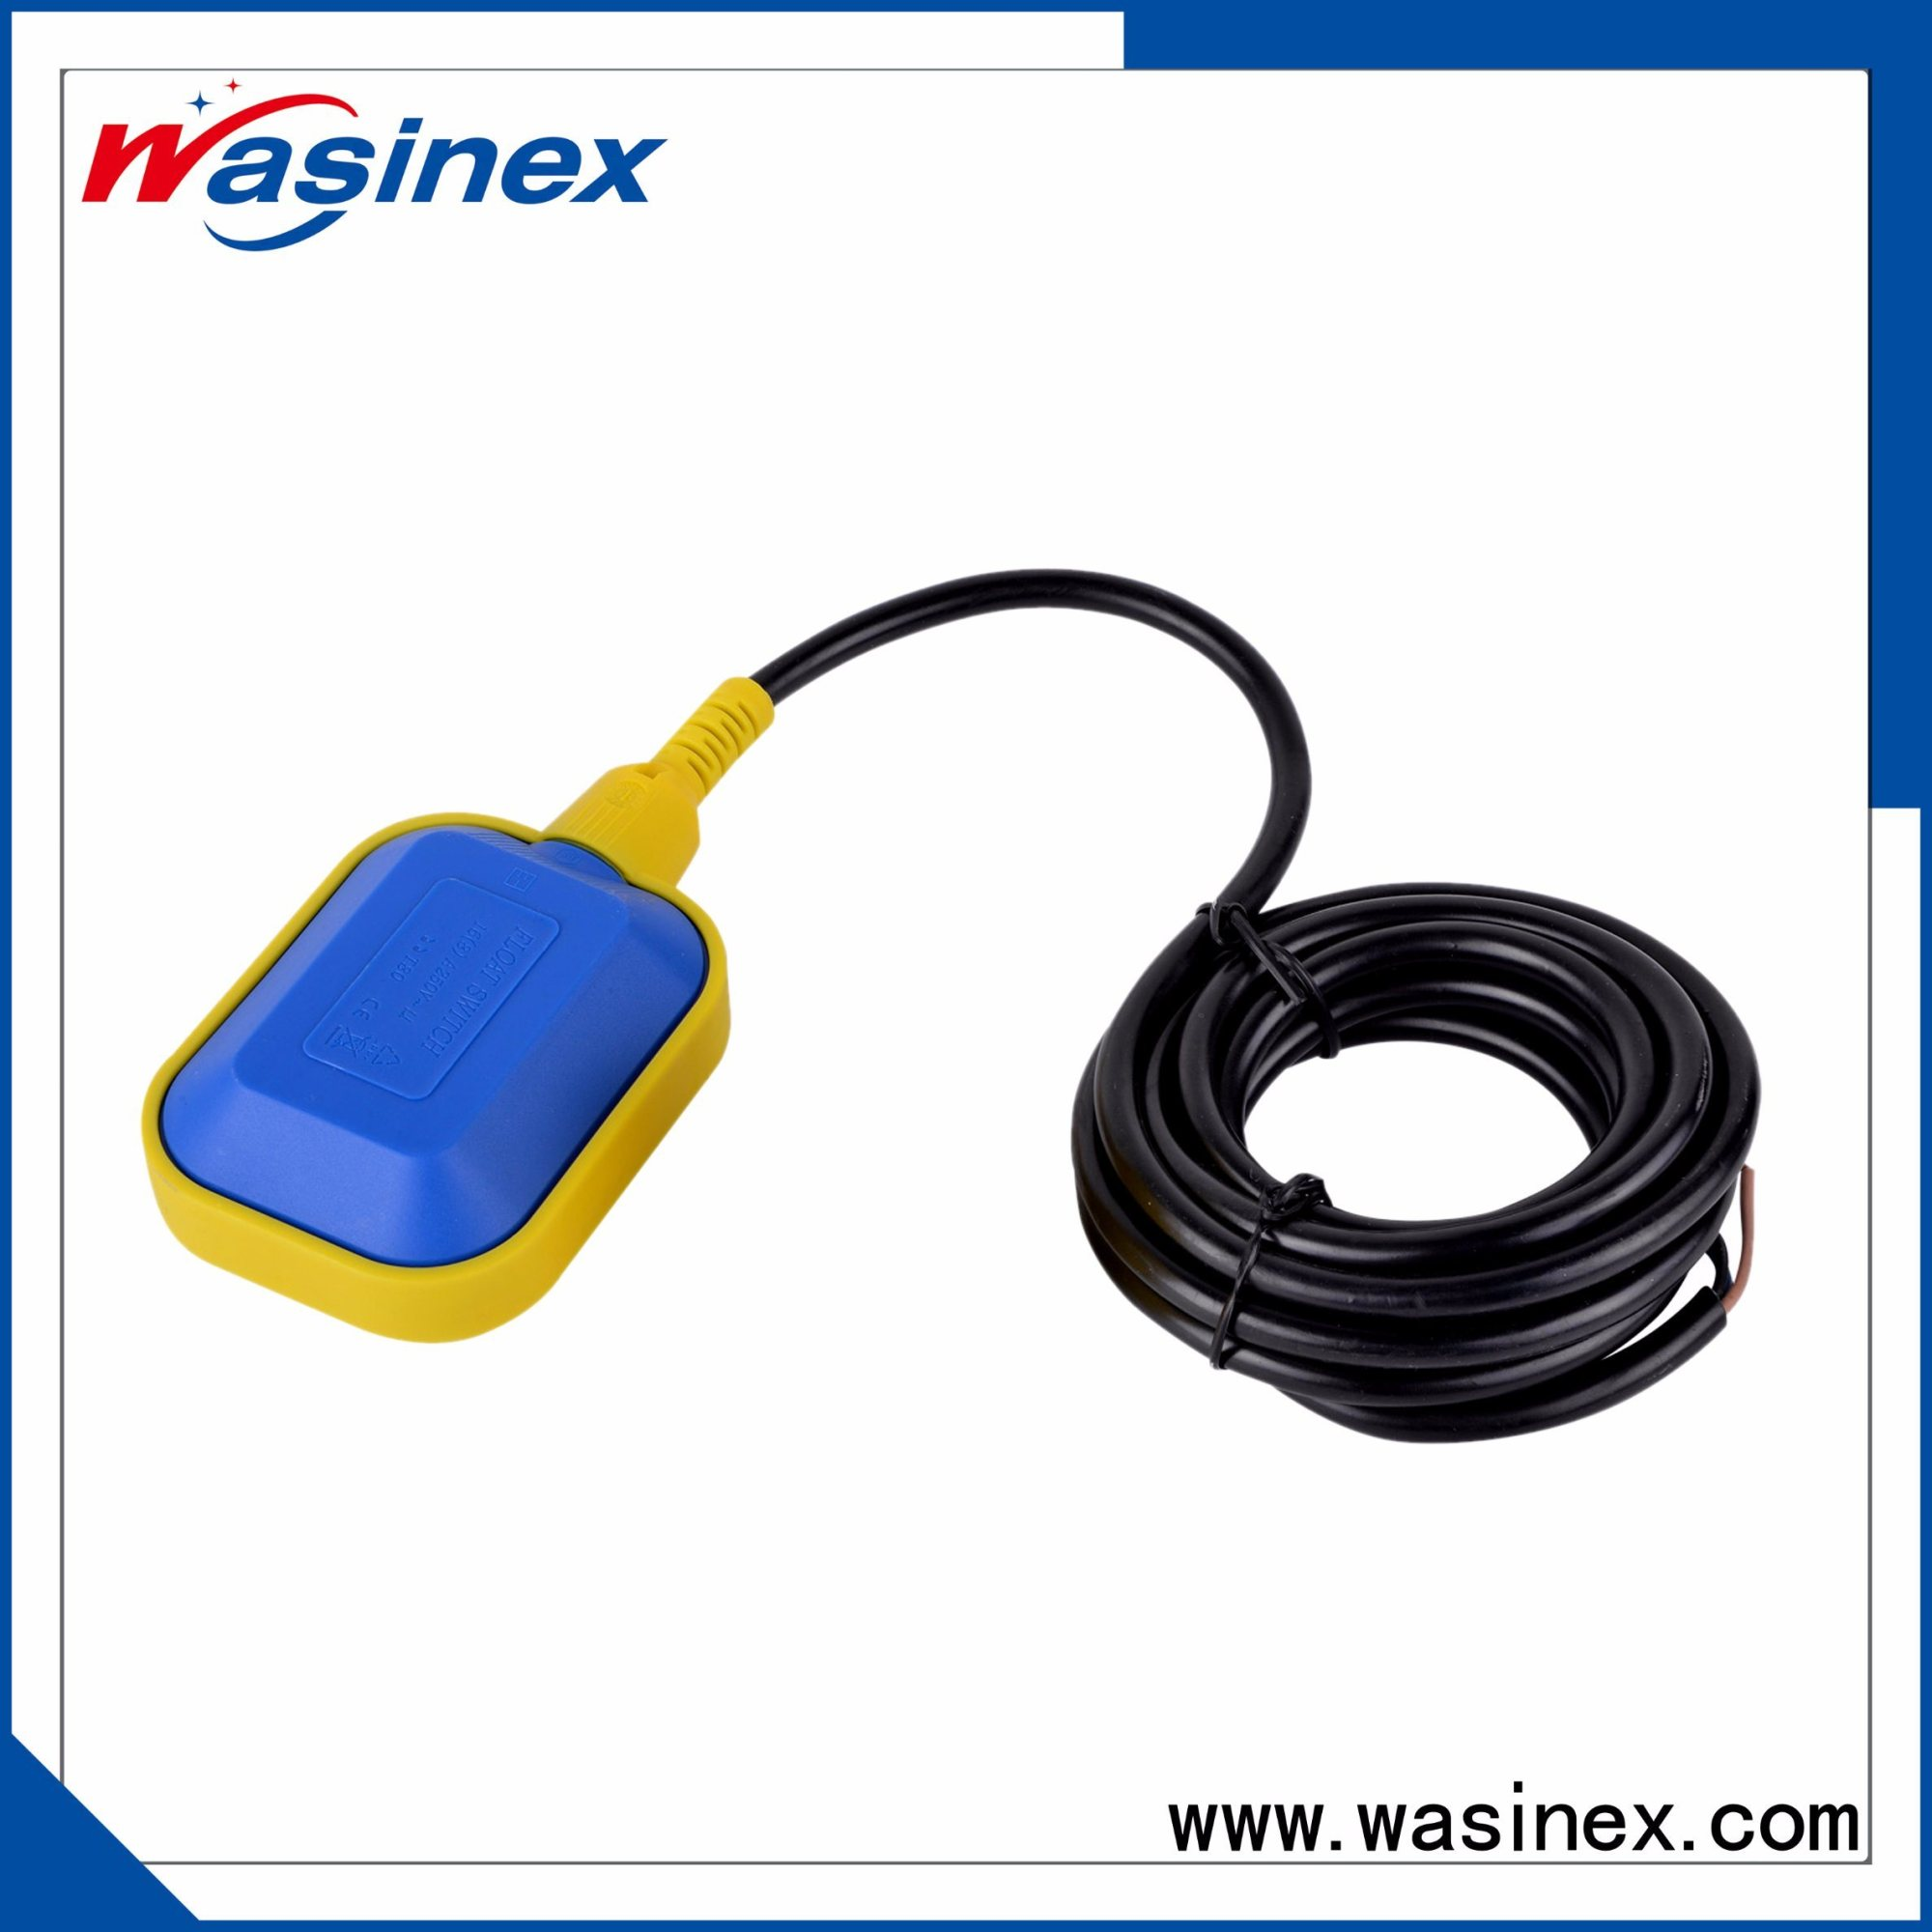 hight resolution of china wasinex float level control switch for water supply fsk 1 china water pump float switch water pump switch